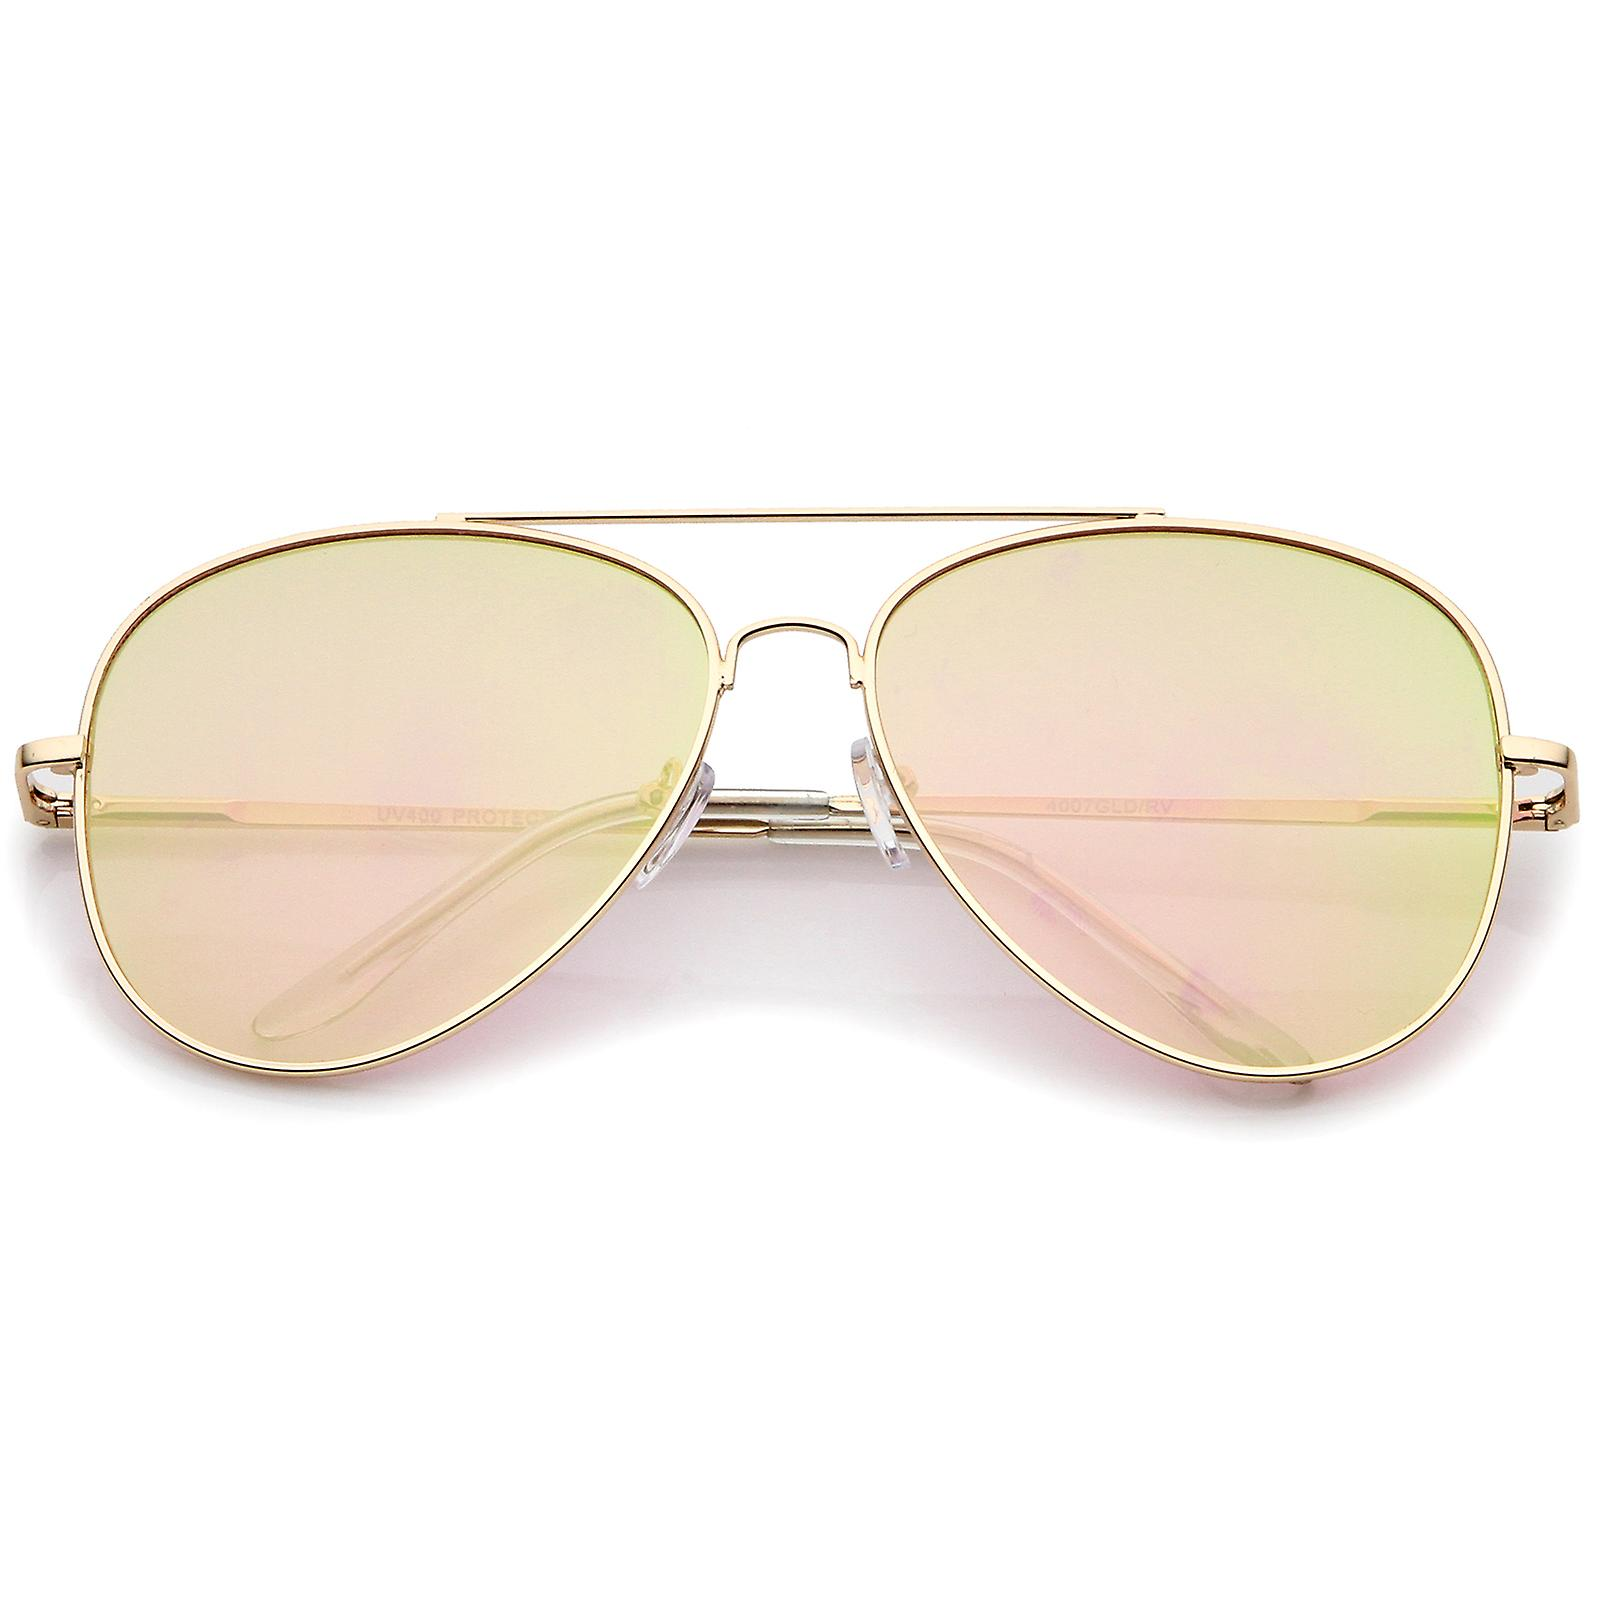 ded3a59f2 Large Metal Frame Colored Mirror Flat Lens Aviator Sunglasses 60mm ...